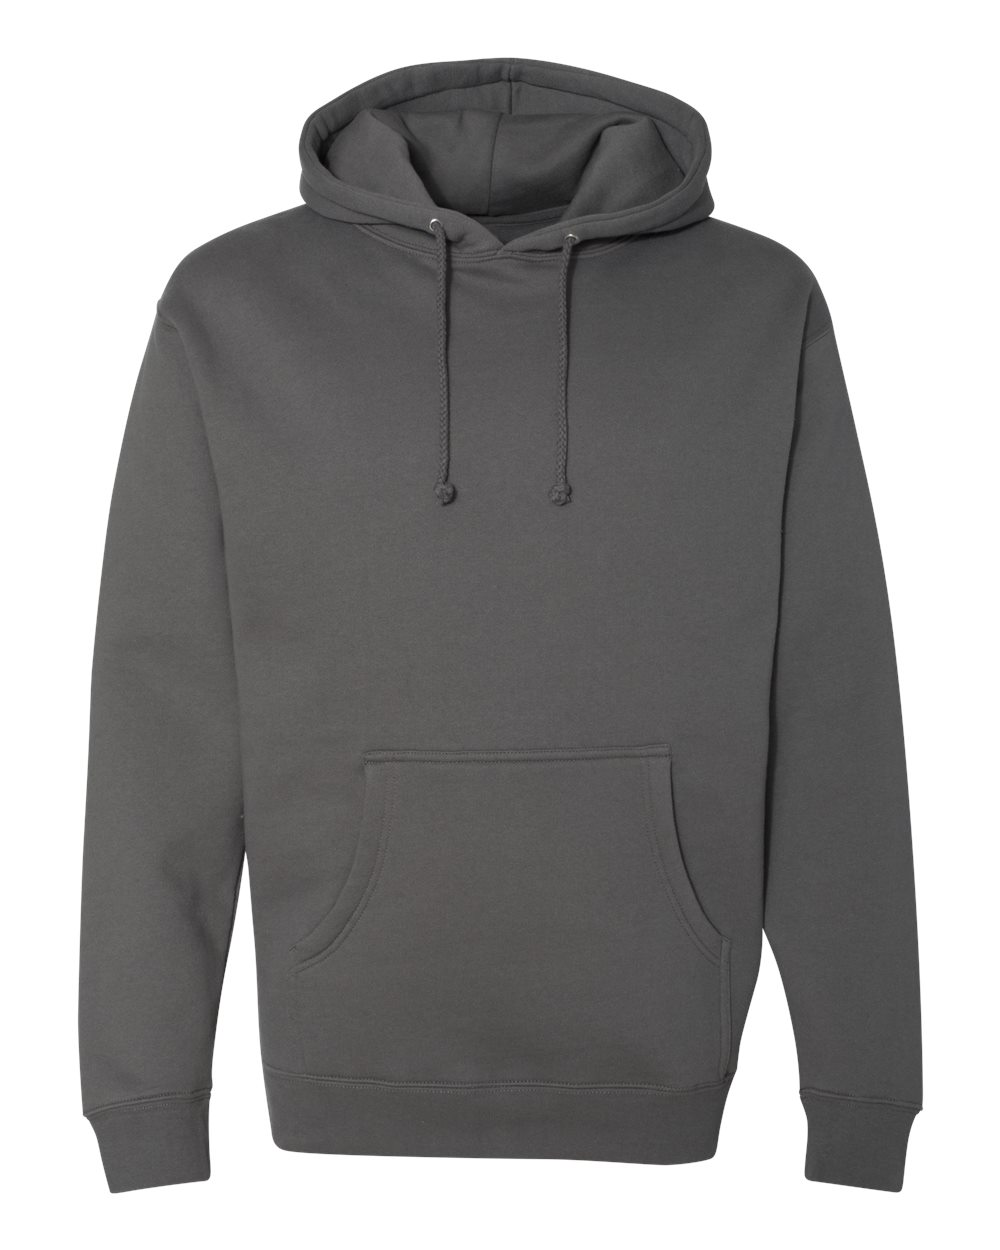 Independent-Trading-Co-Mens-Hooded-Pullover-Sweatshirt-IND4000-up-to-3XL miniature 24